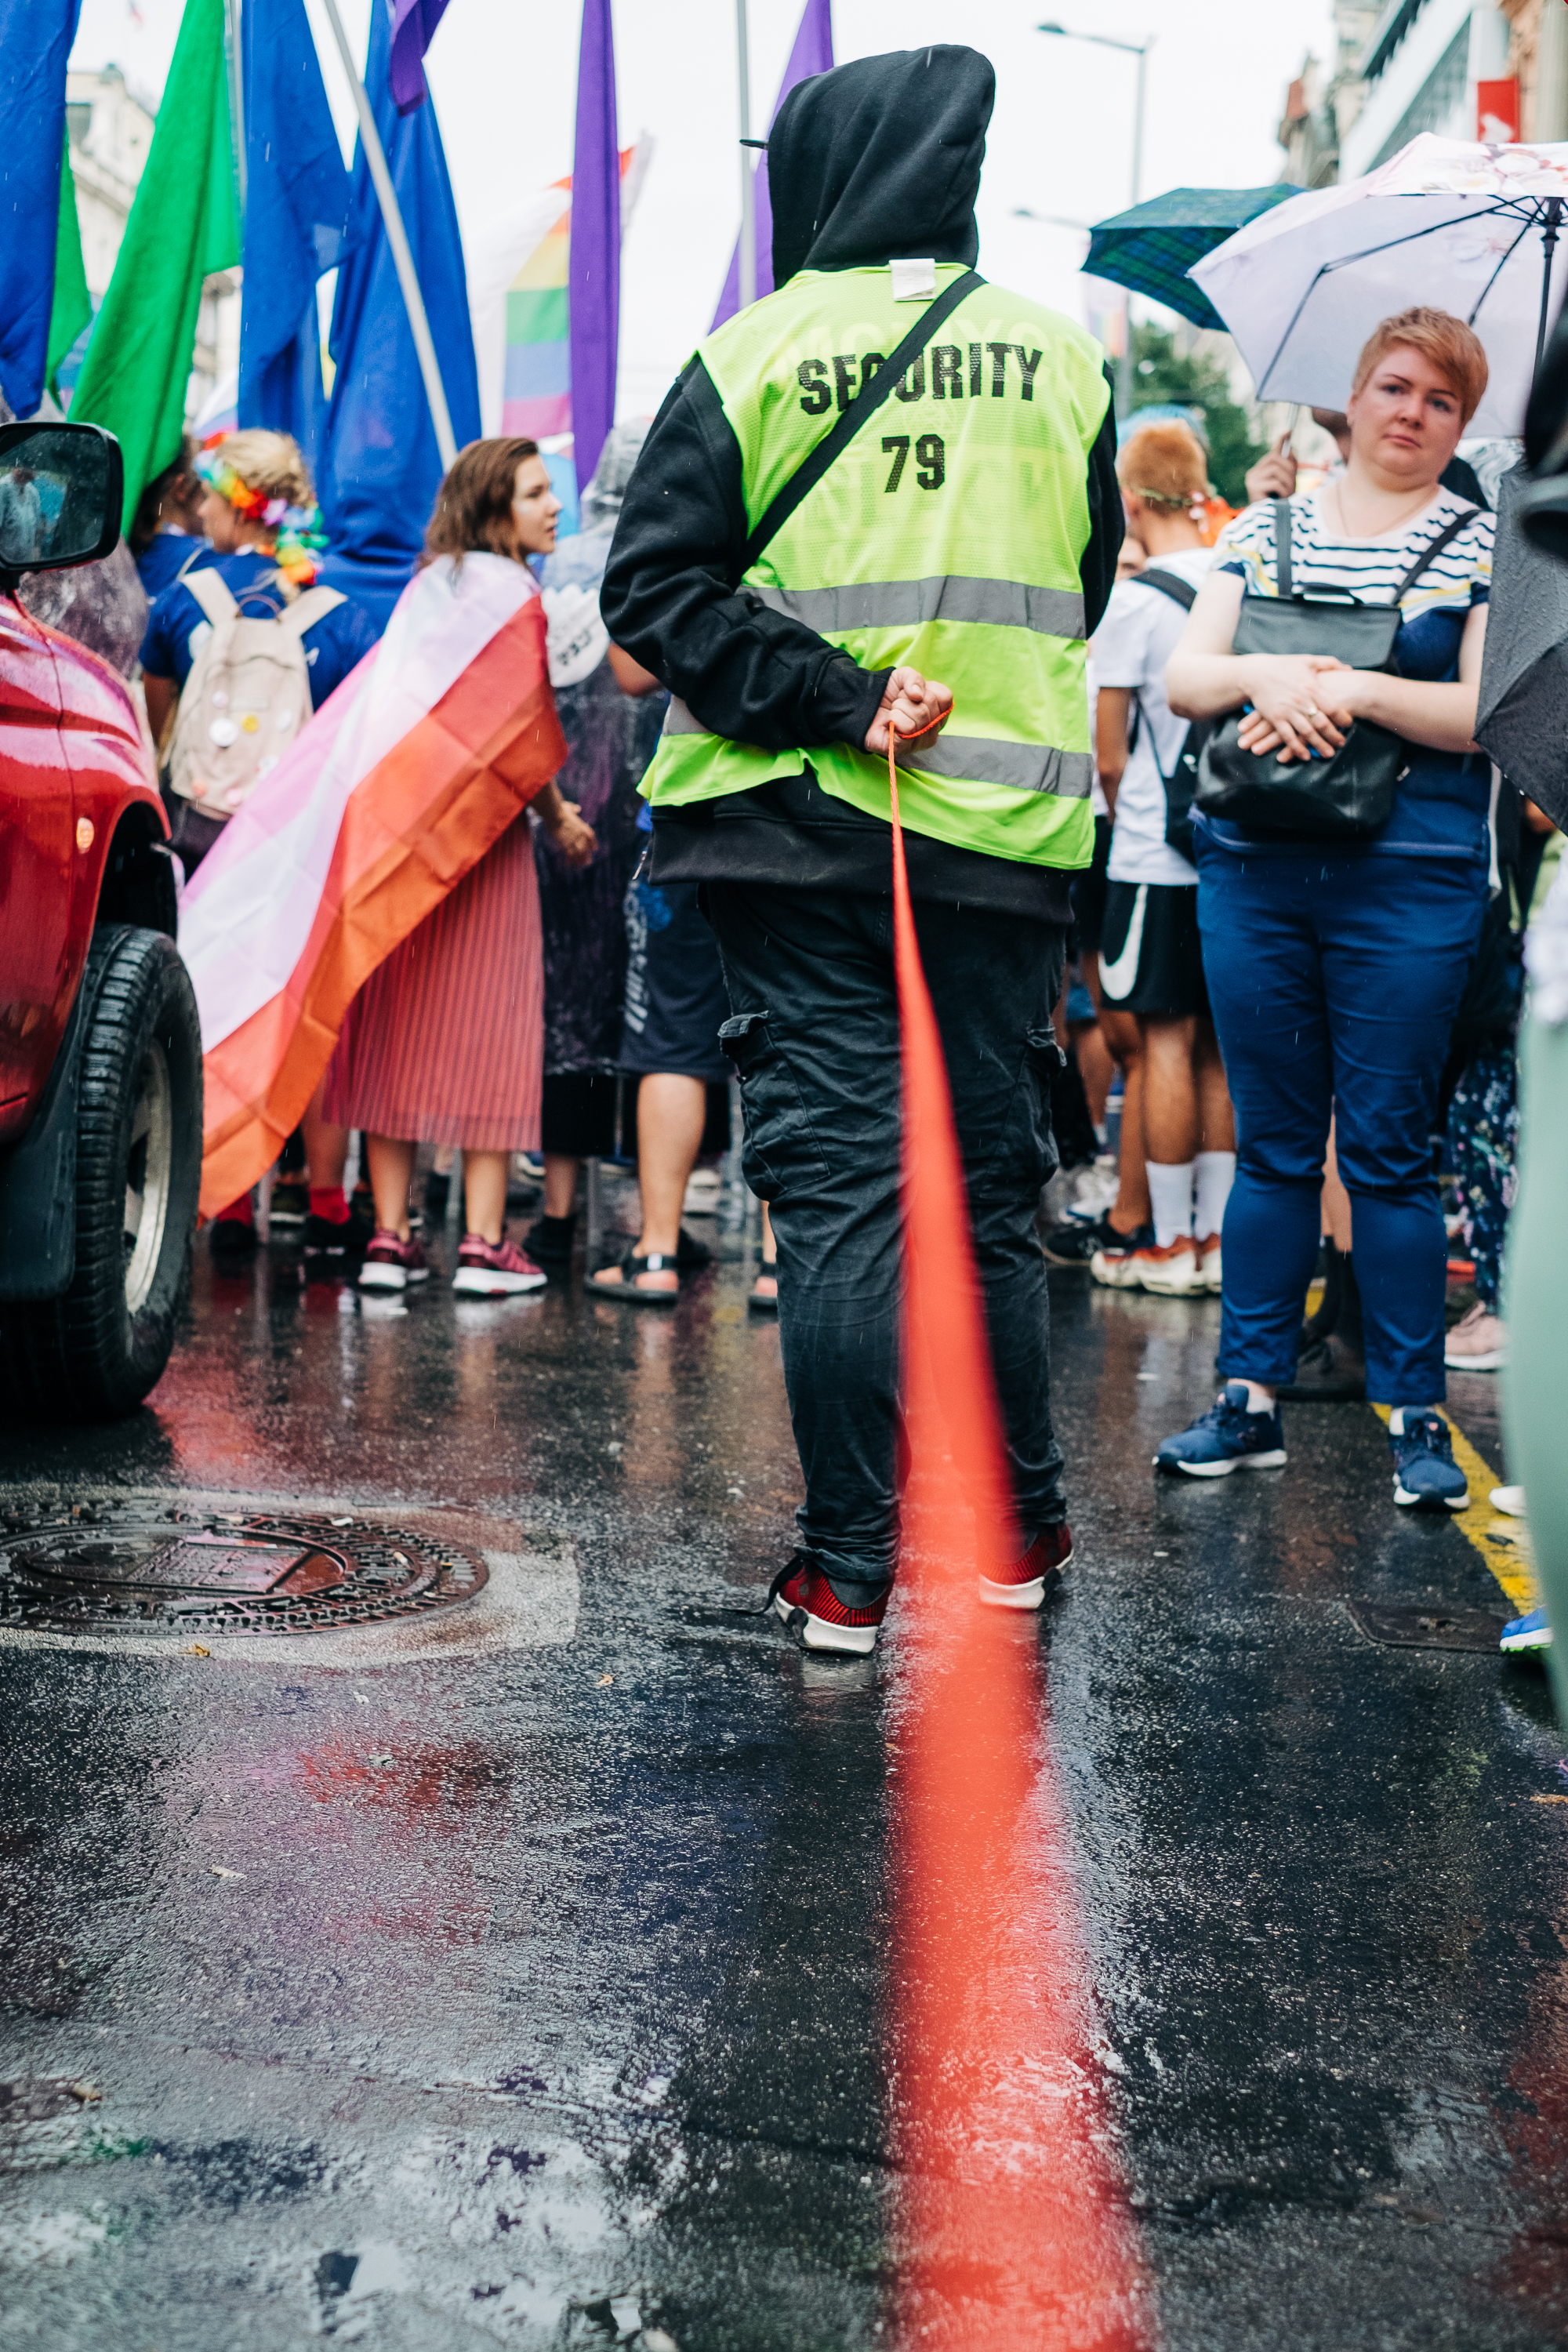 Prague Pride 2019 (13 of 47).jpg